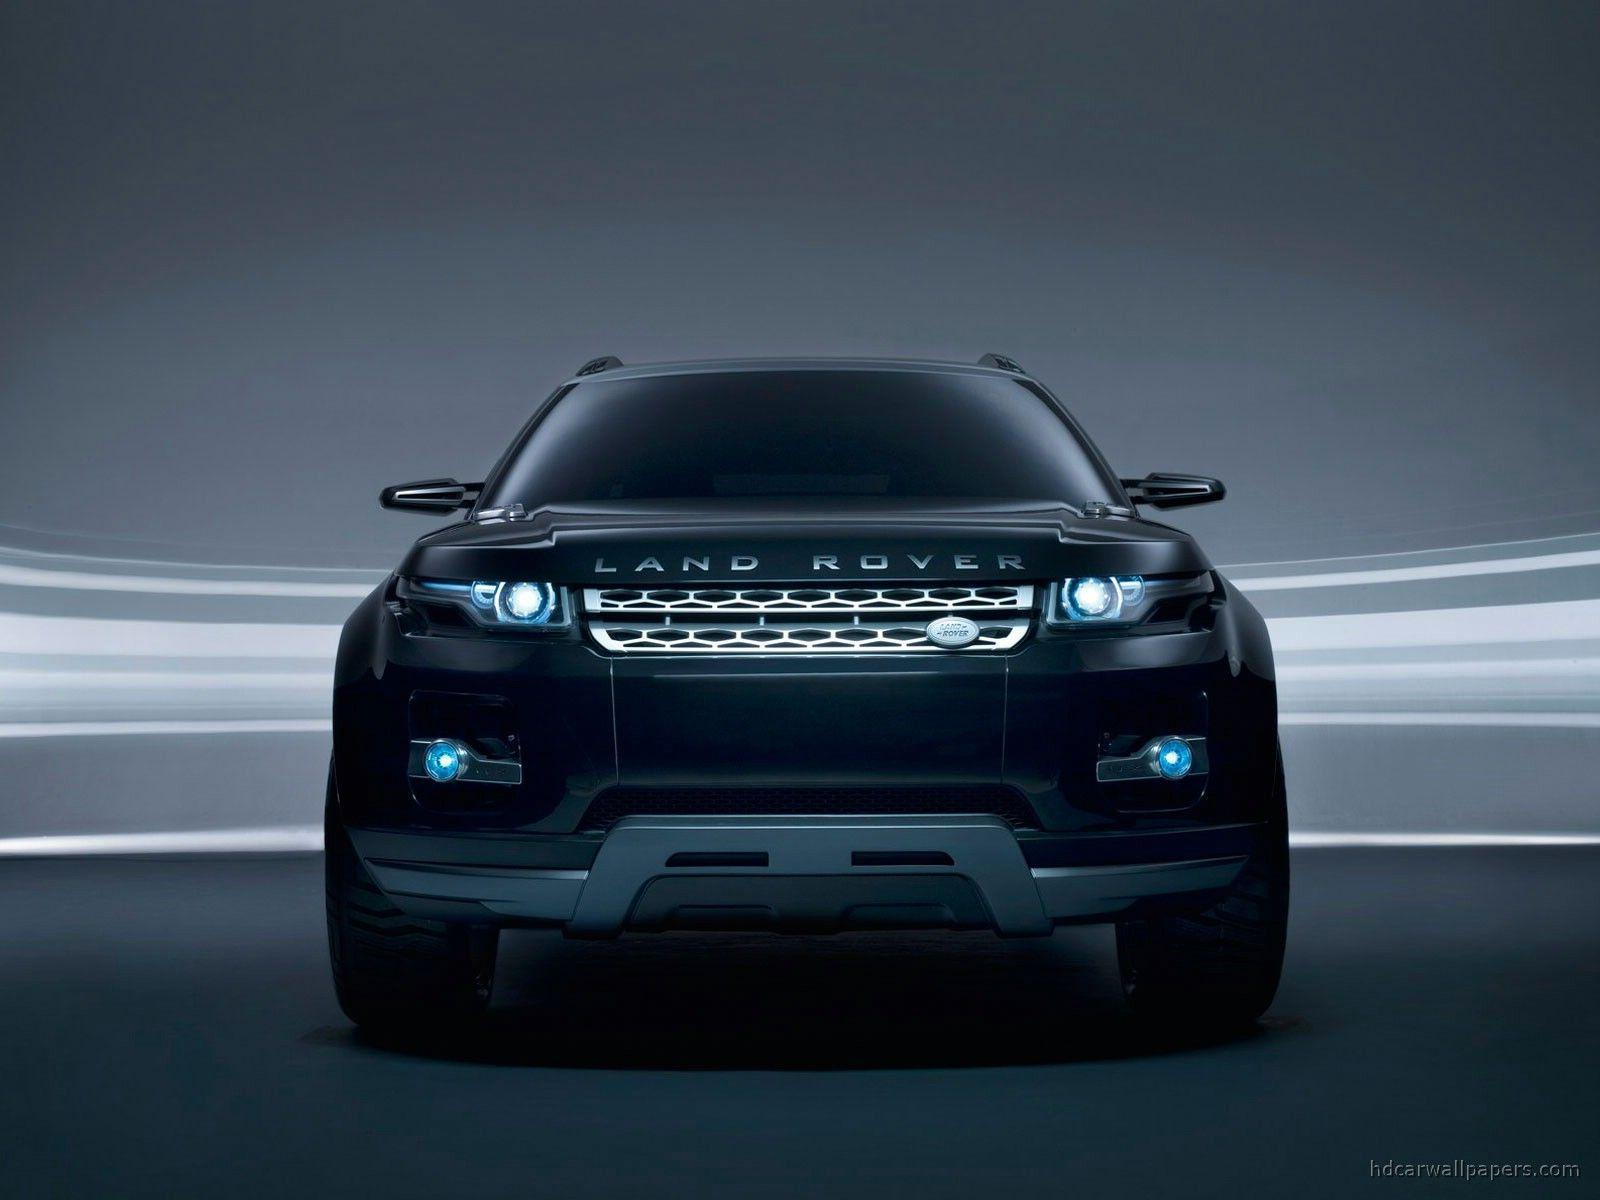 Land Rover Wallpapers - Page 1 - HD Wallpapers